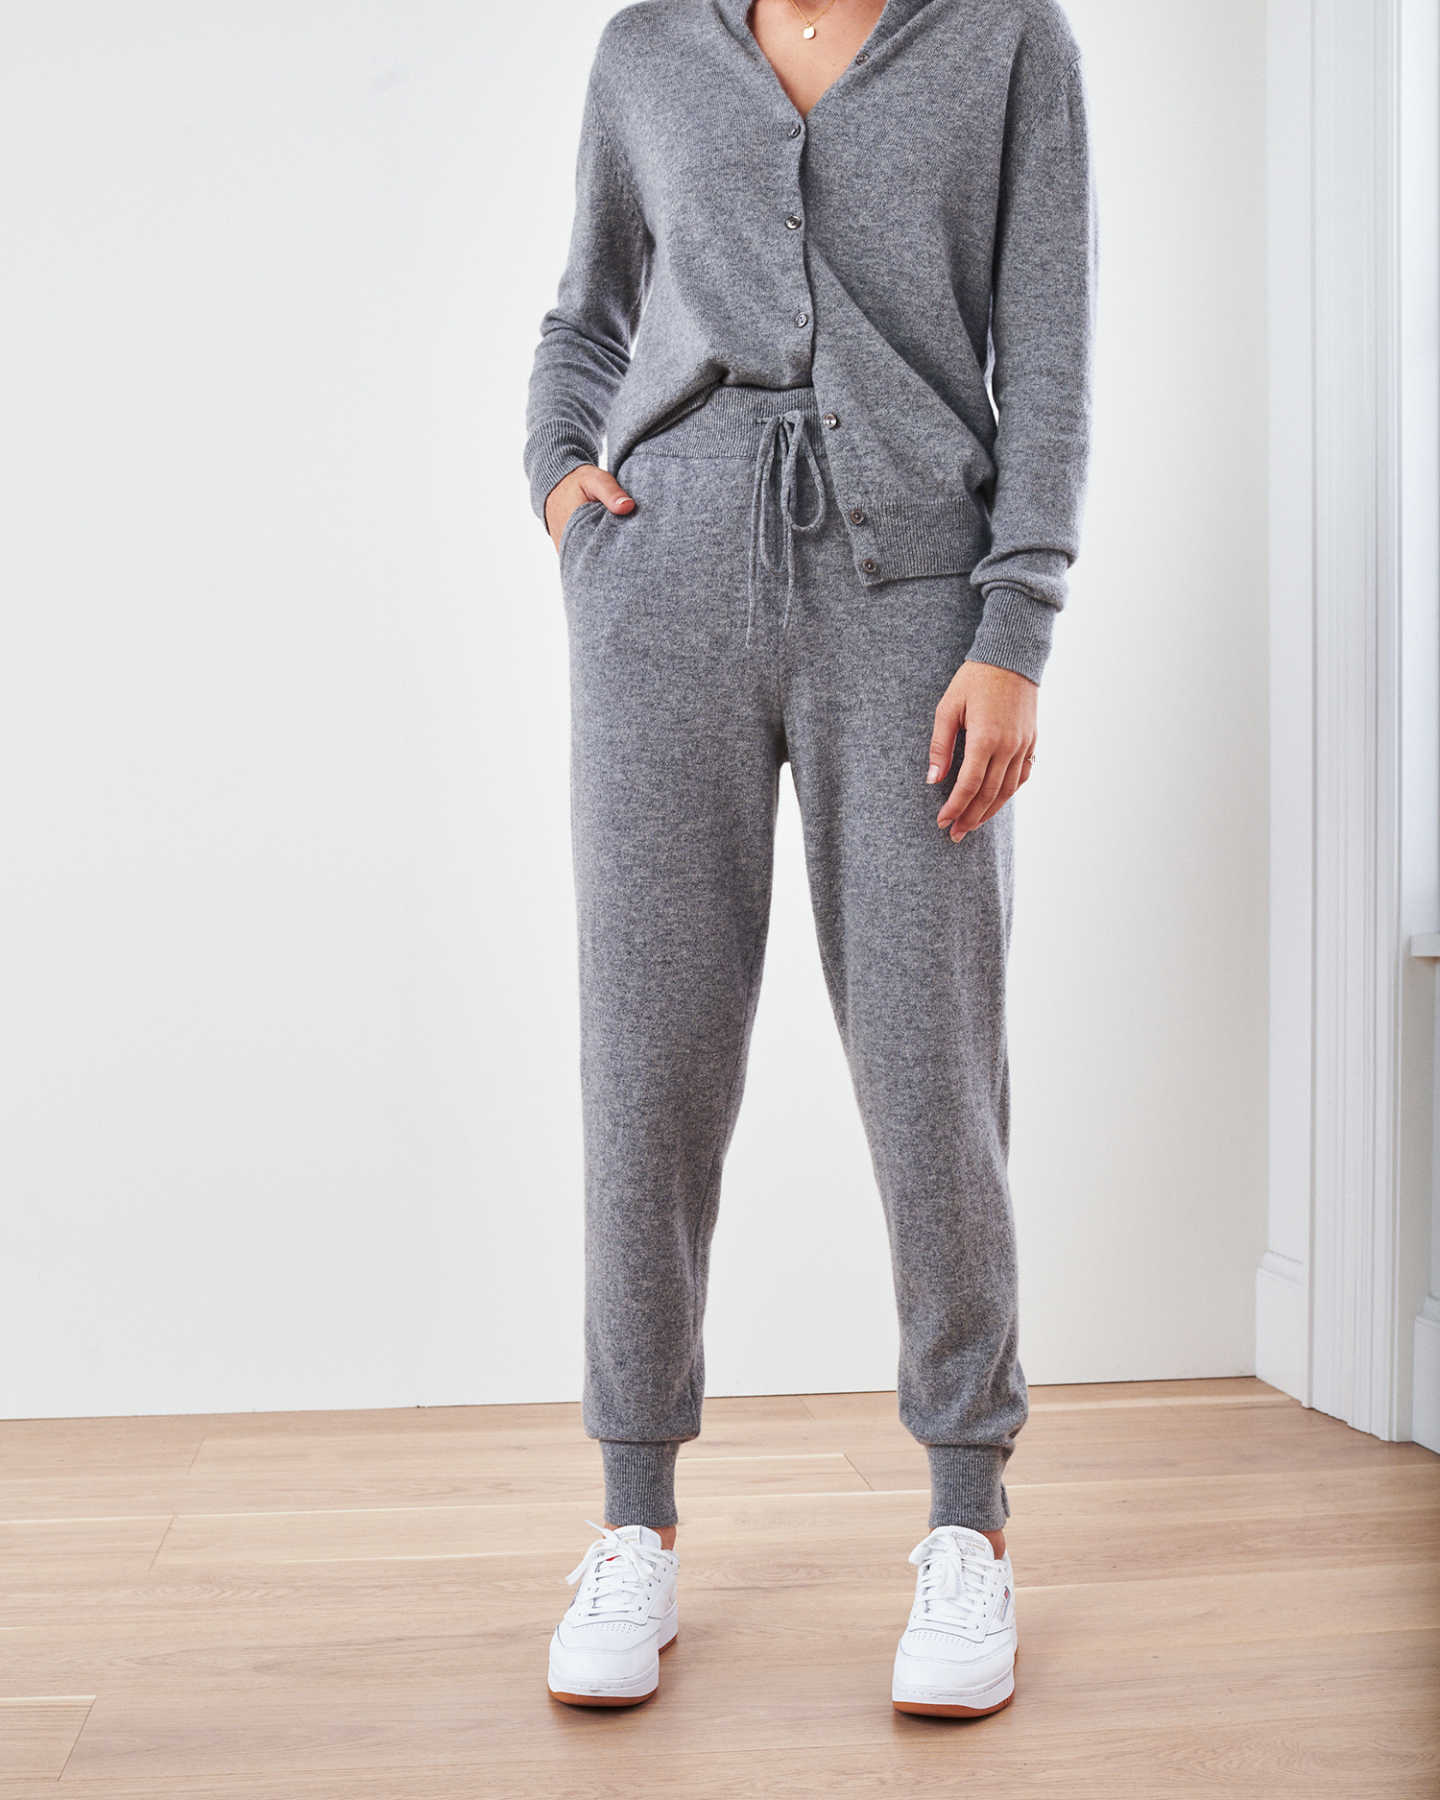 Woman wearing grey cashmere sweatpants & cashmere joggers with cardigan